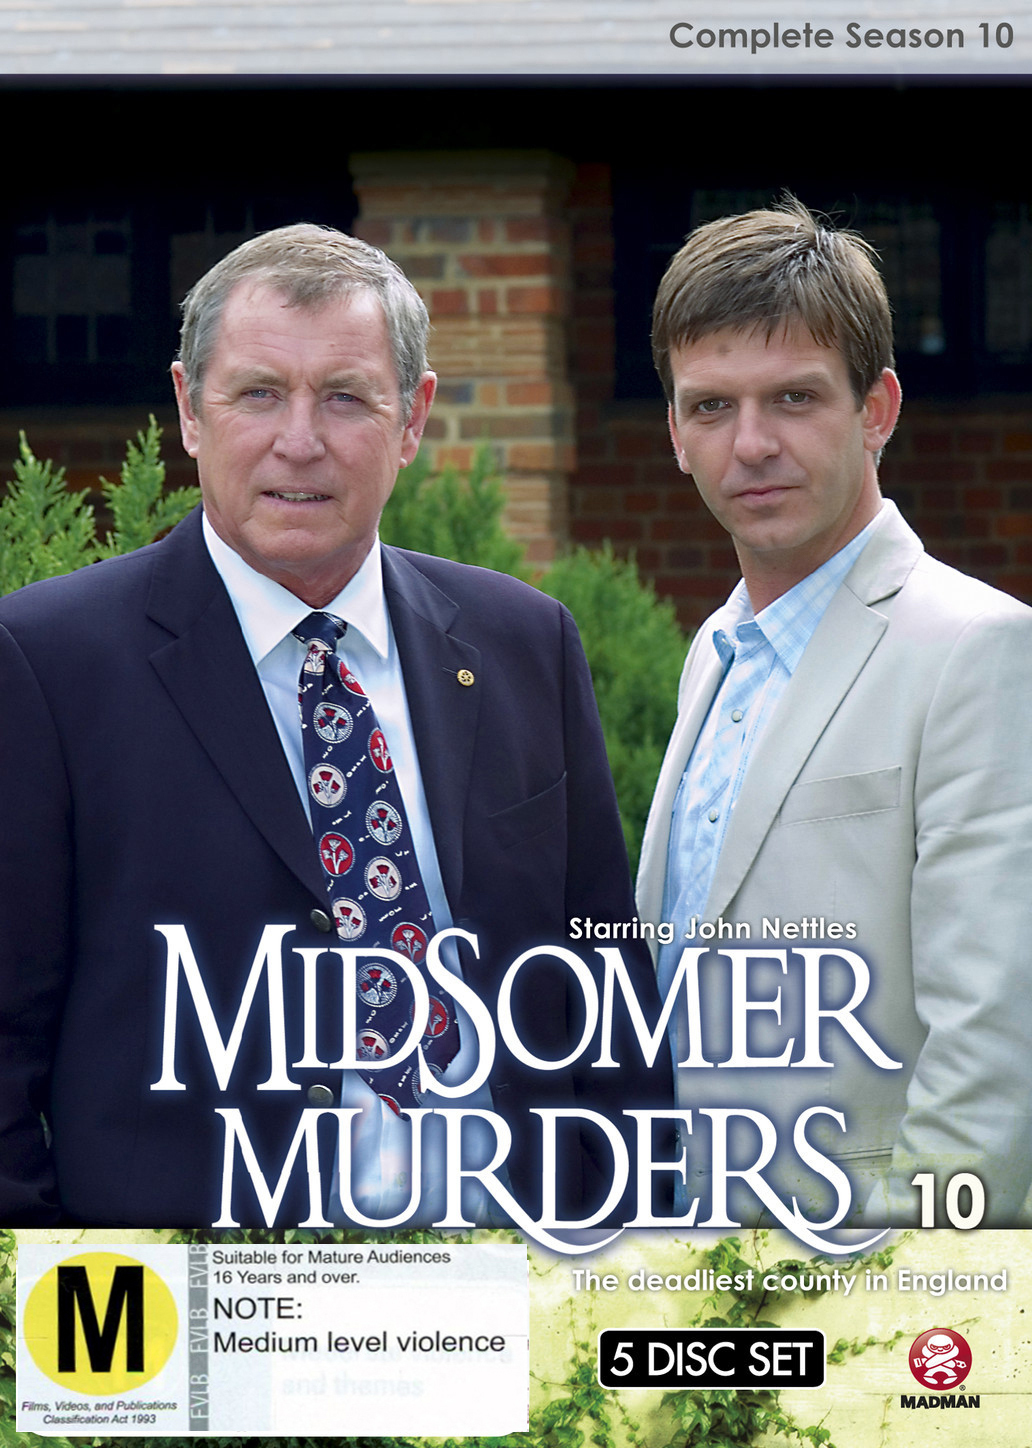 Midsomer Murders - Complete Season 10 (Single Case) on DVD image